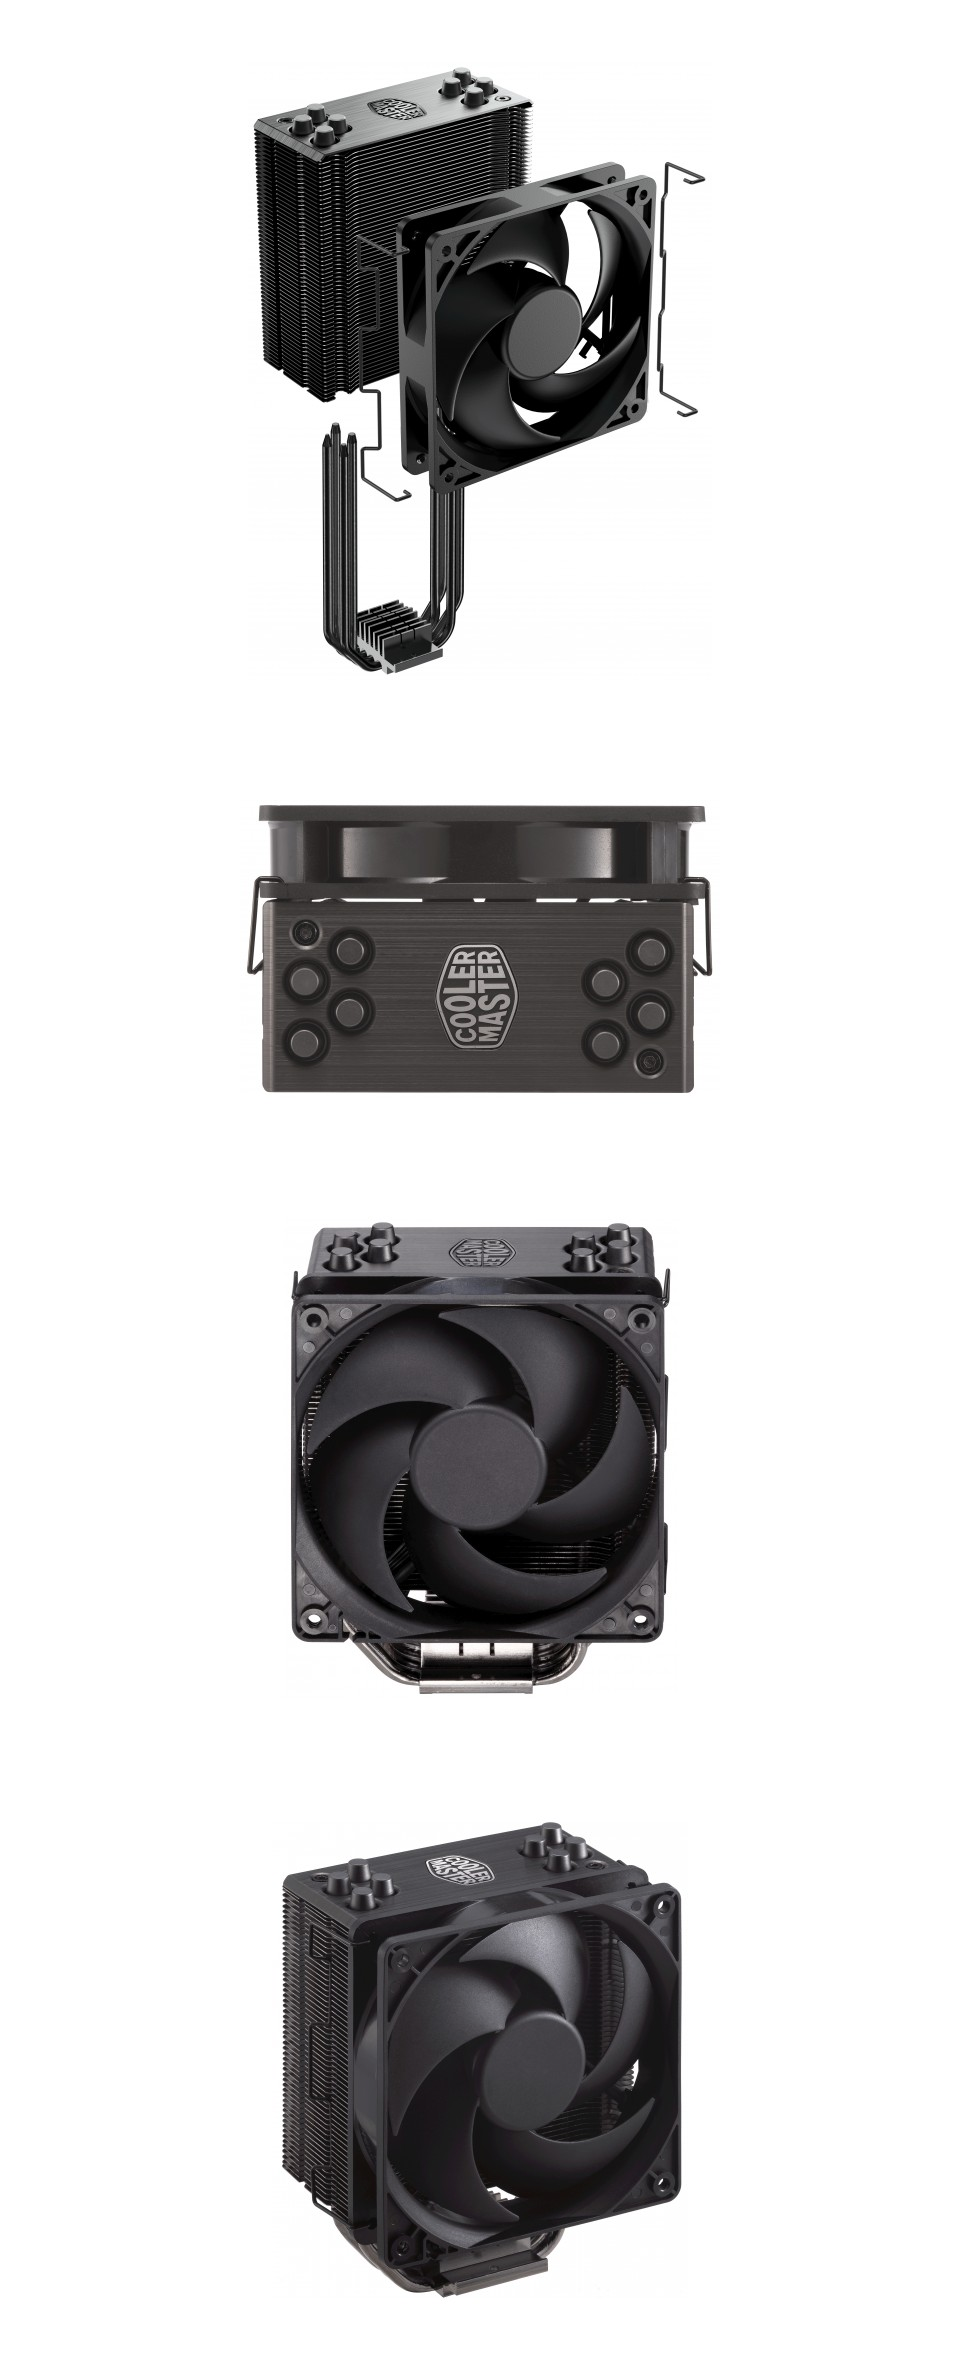 Cooler Master Hyper 212 Black Edition CPU Cooler product